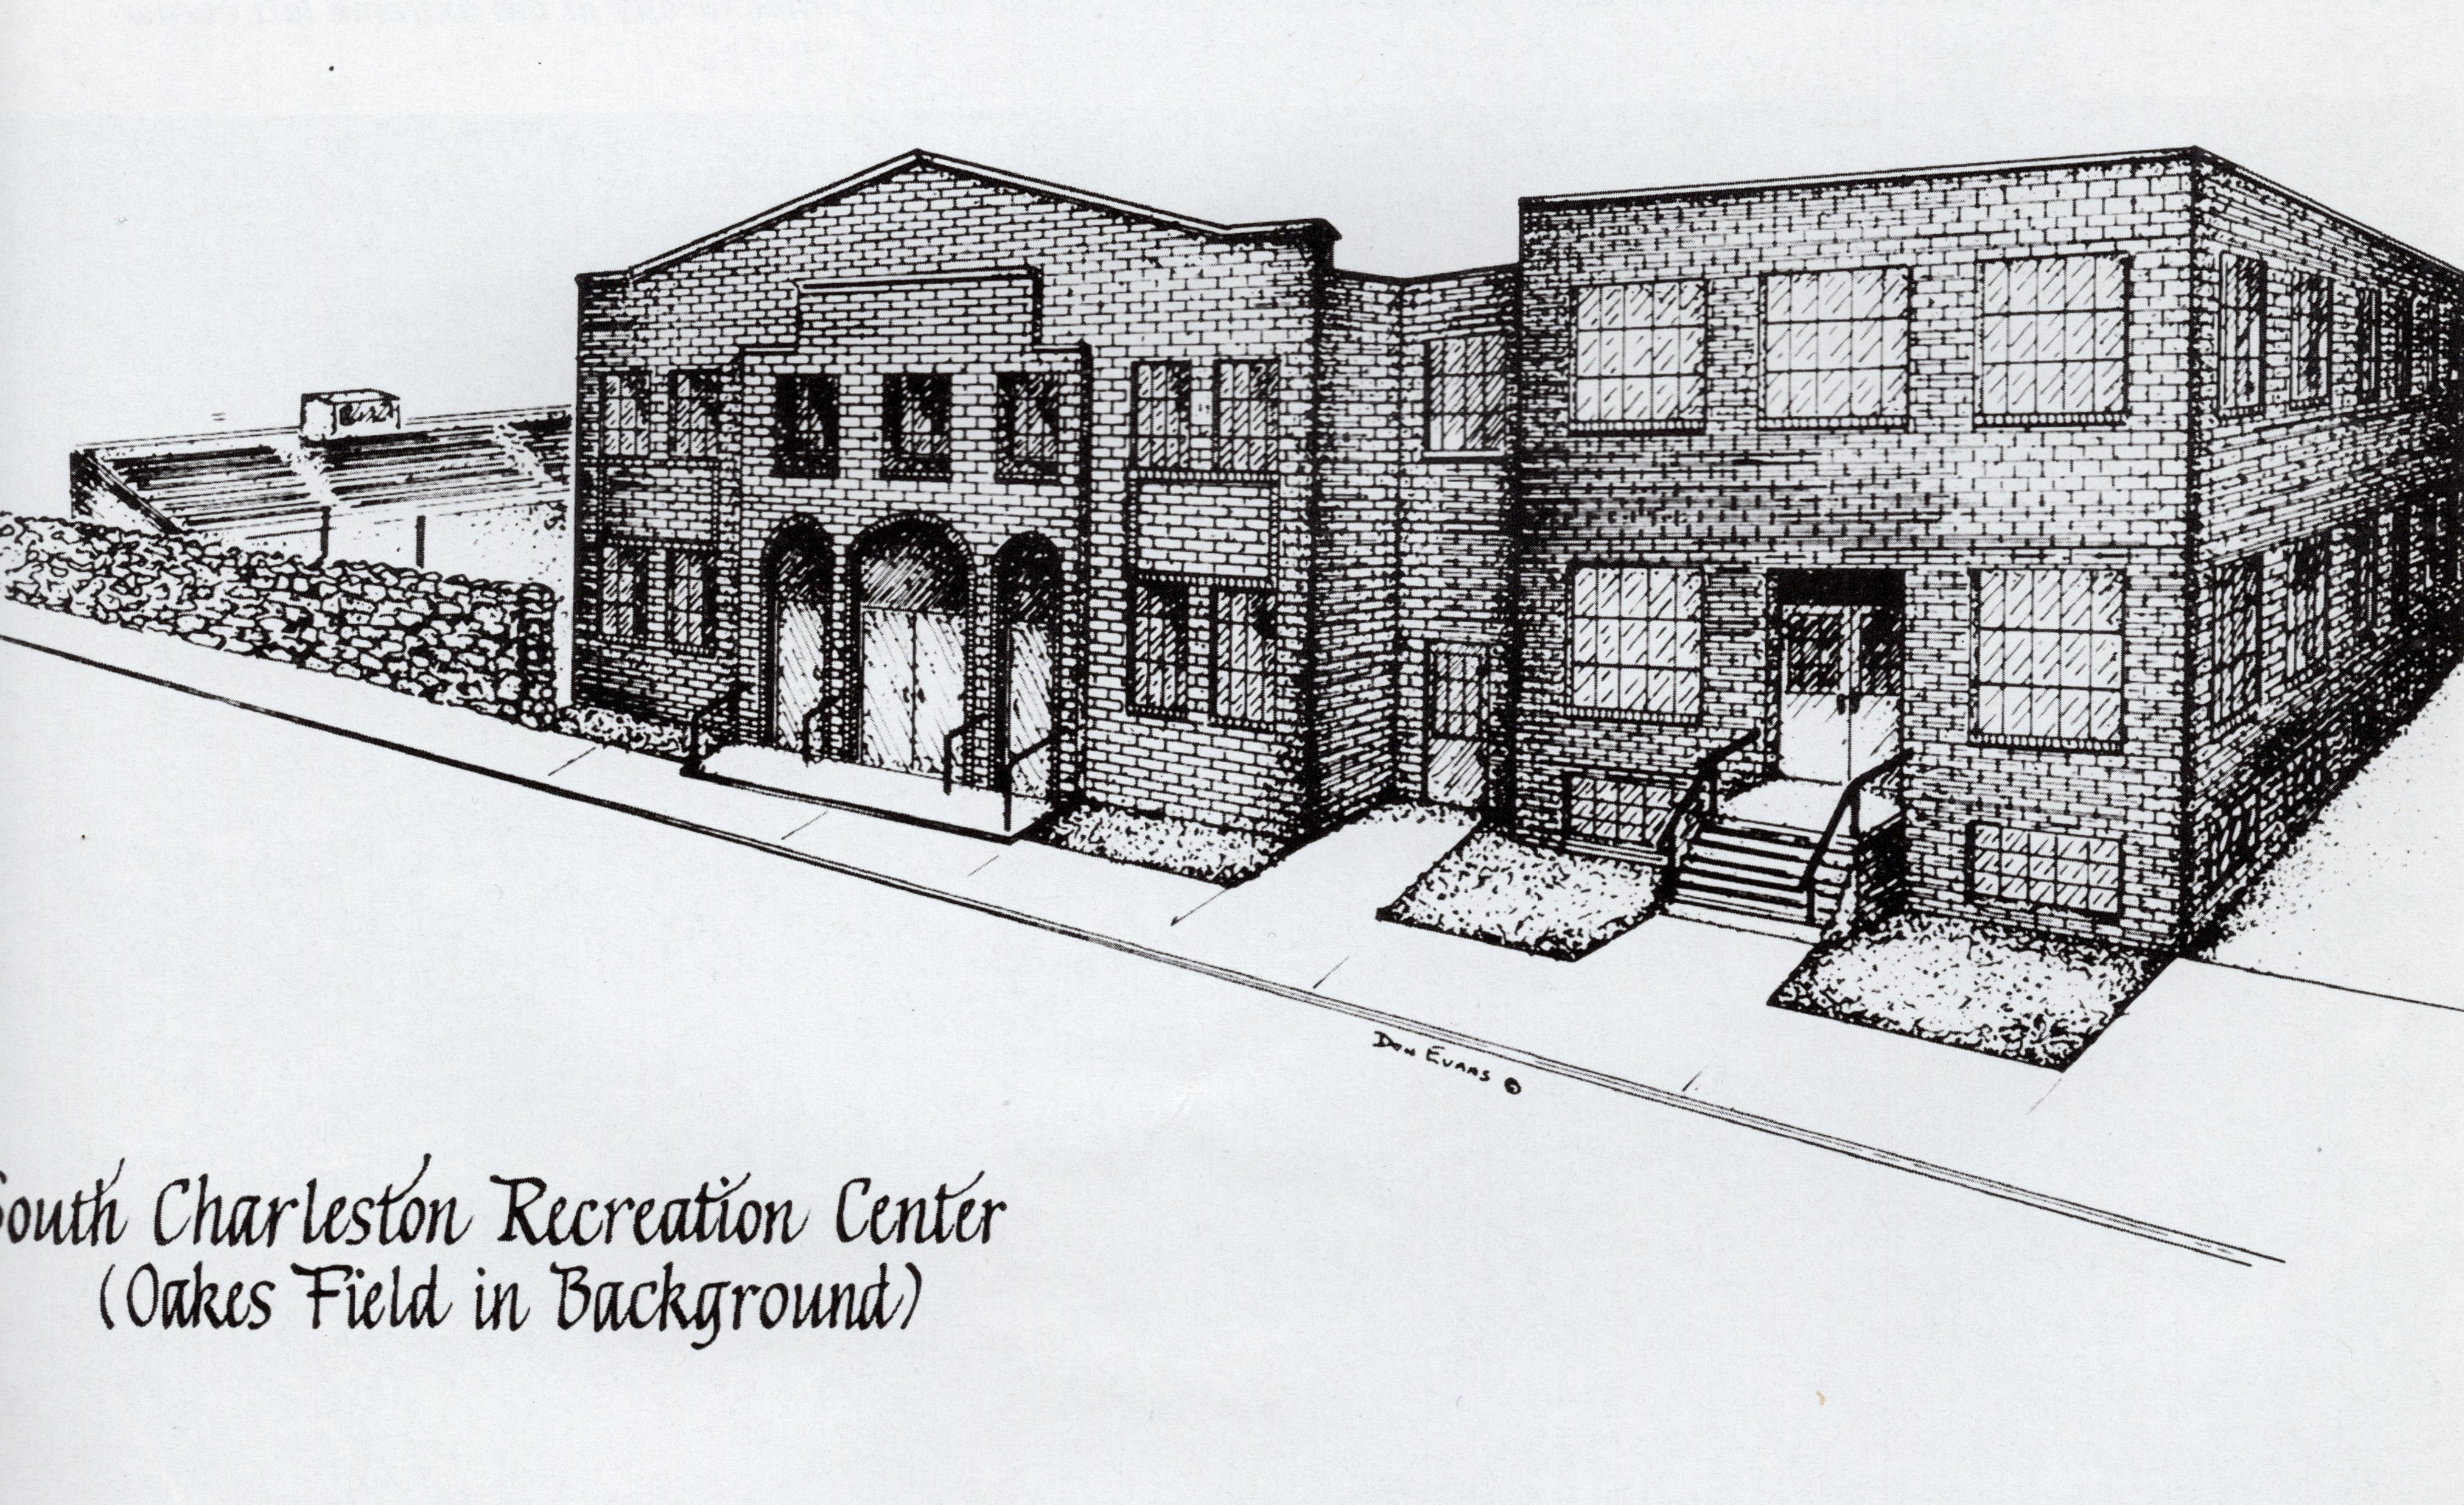 Pen-and-ink rendering of the Oakes Field Gymnasium and adjacent South Charleston Recreation Center. The Rec Center was sold when the new Community Center was built. The Rec Center was first converted into apartments, then later torn down.